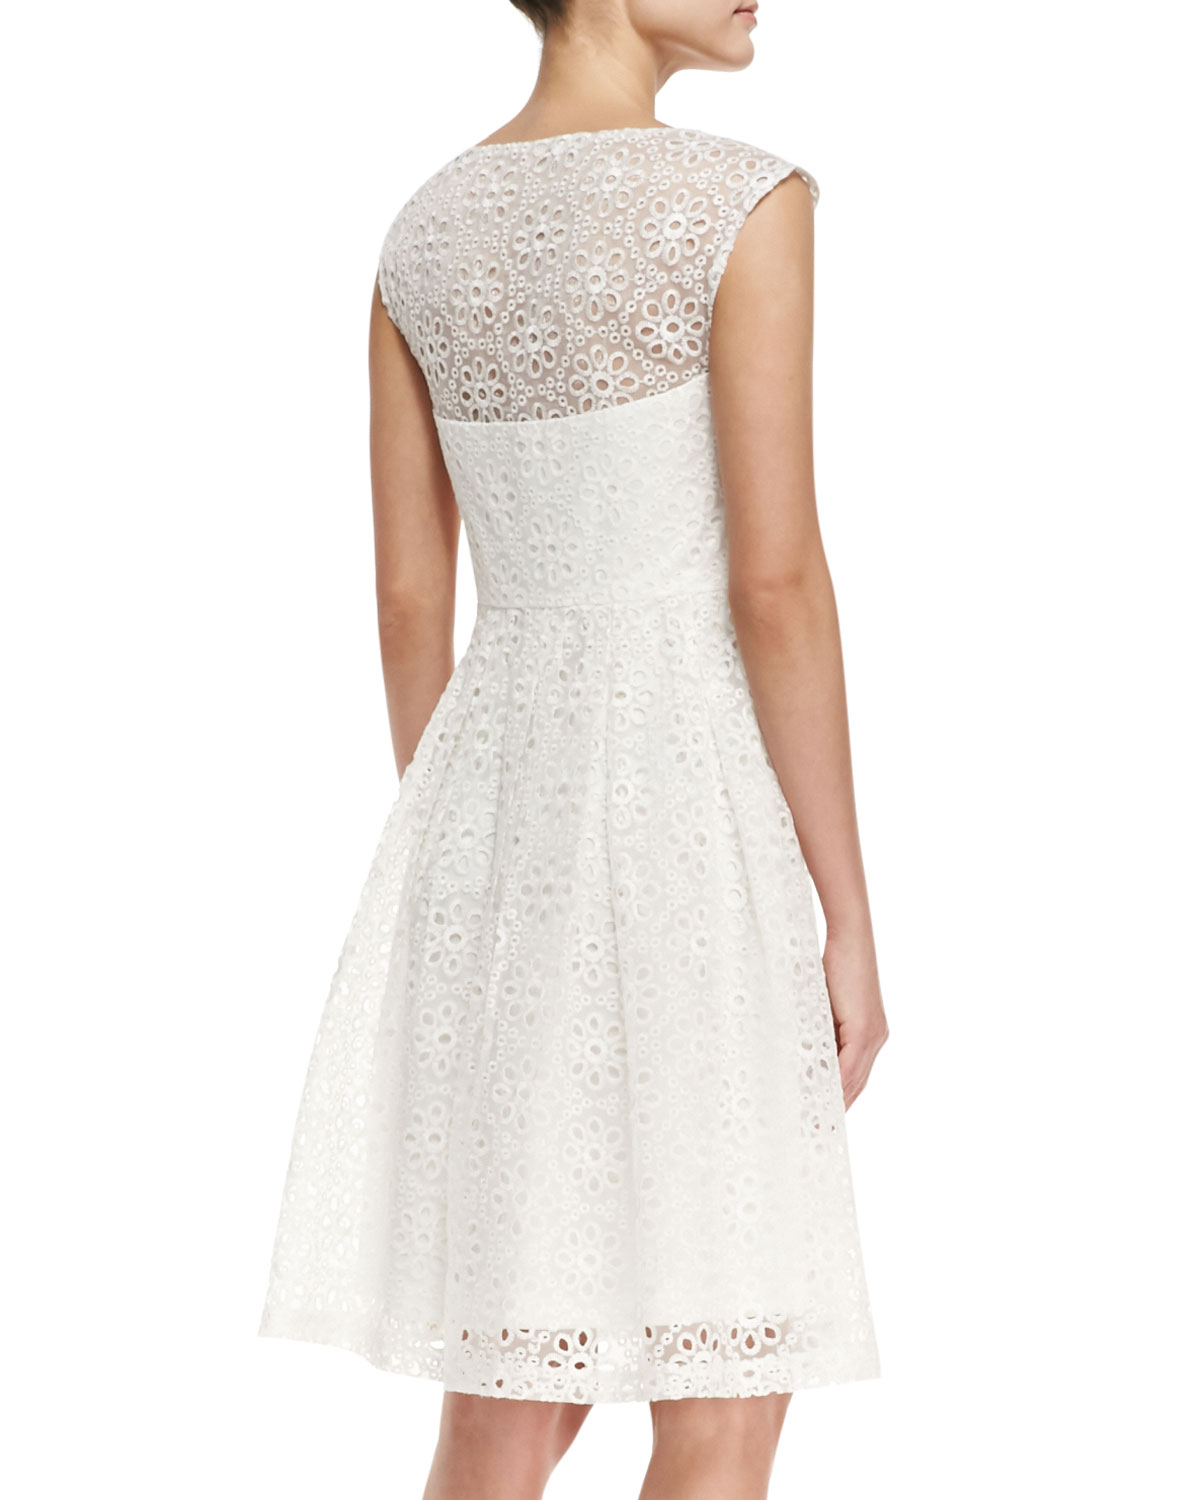 e903c180d99 Lyst - Sue Wong Cap-sleeve Eyelet Fit-and-flare Cocktail Dress in White